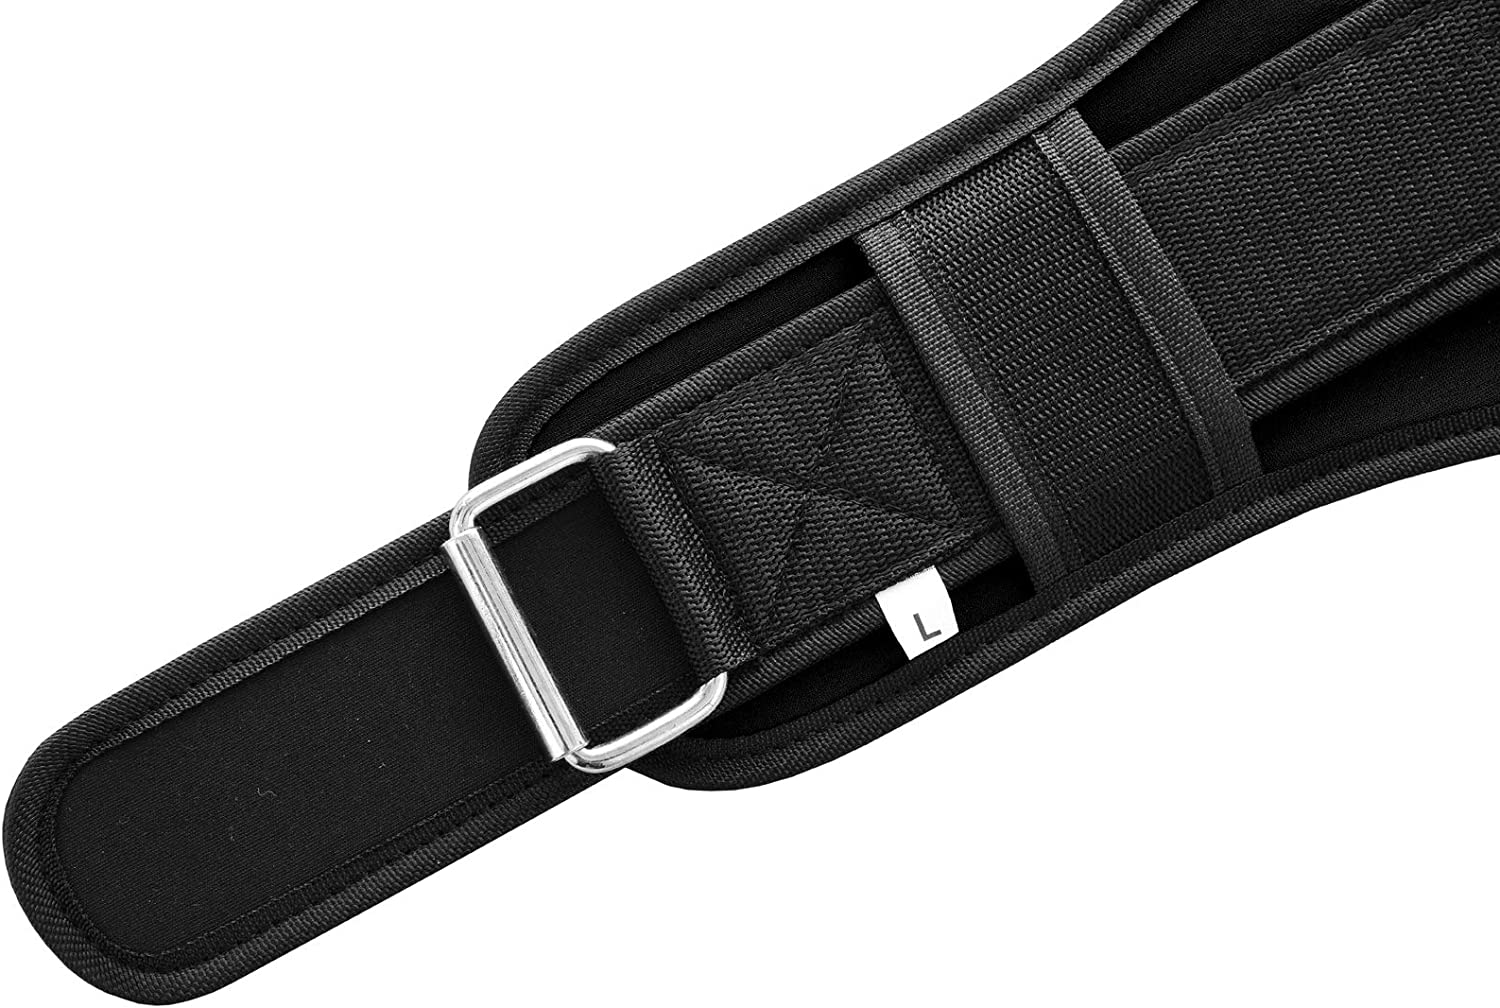 Details about  /Weight Lifting Belt Gym Training Neoprene Fitness Workout Double Support